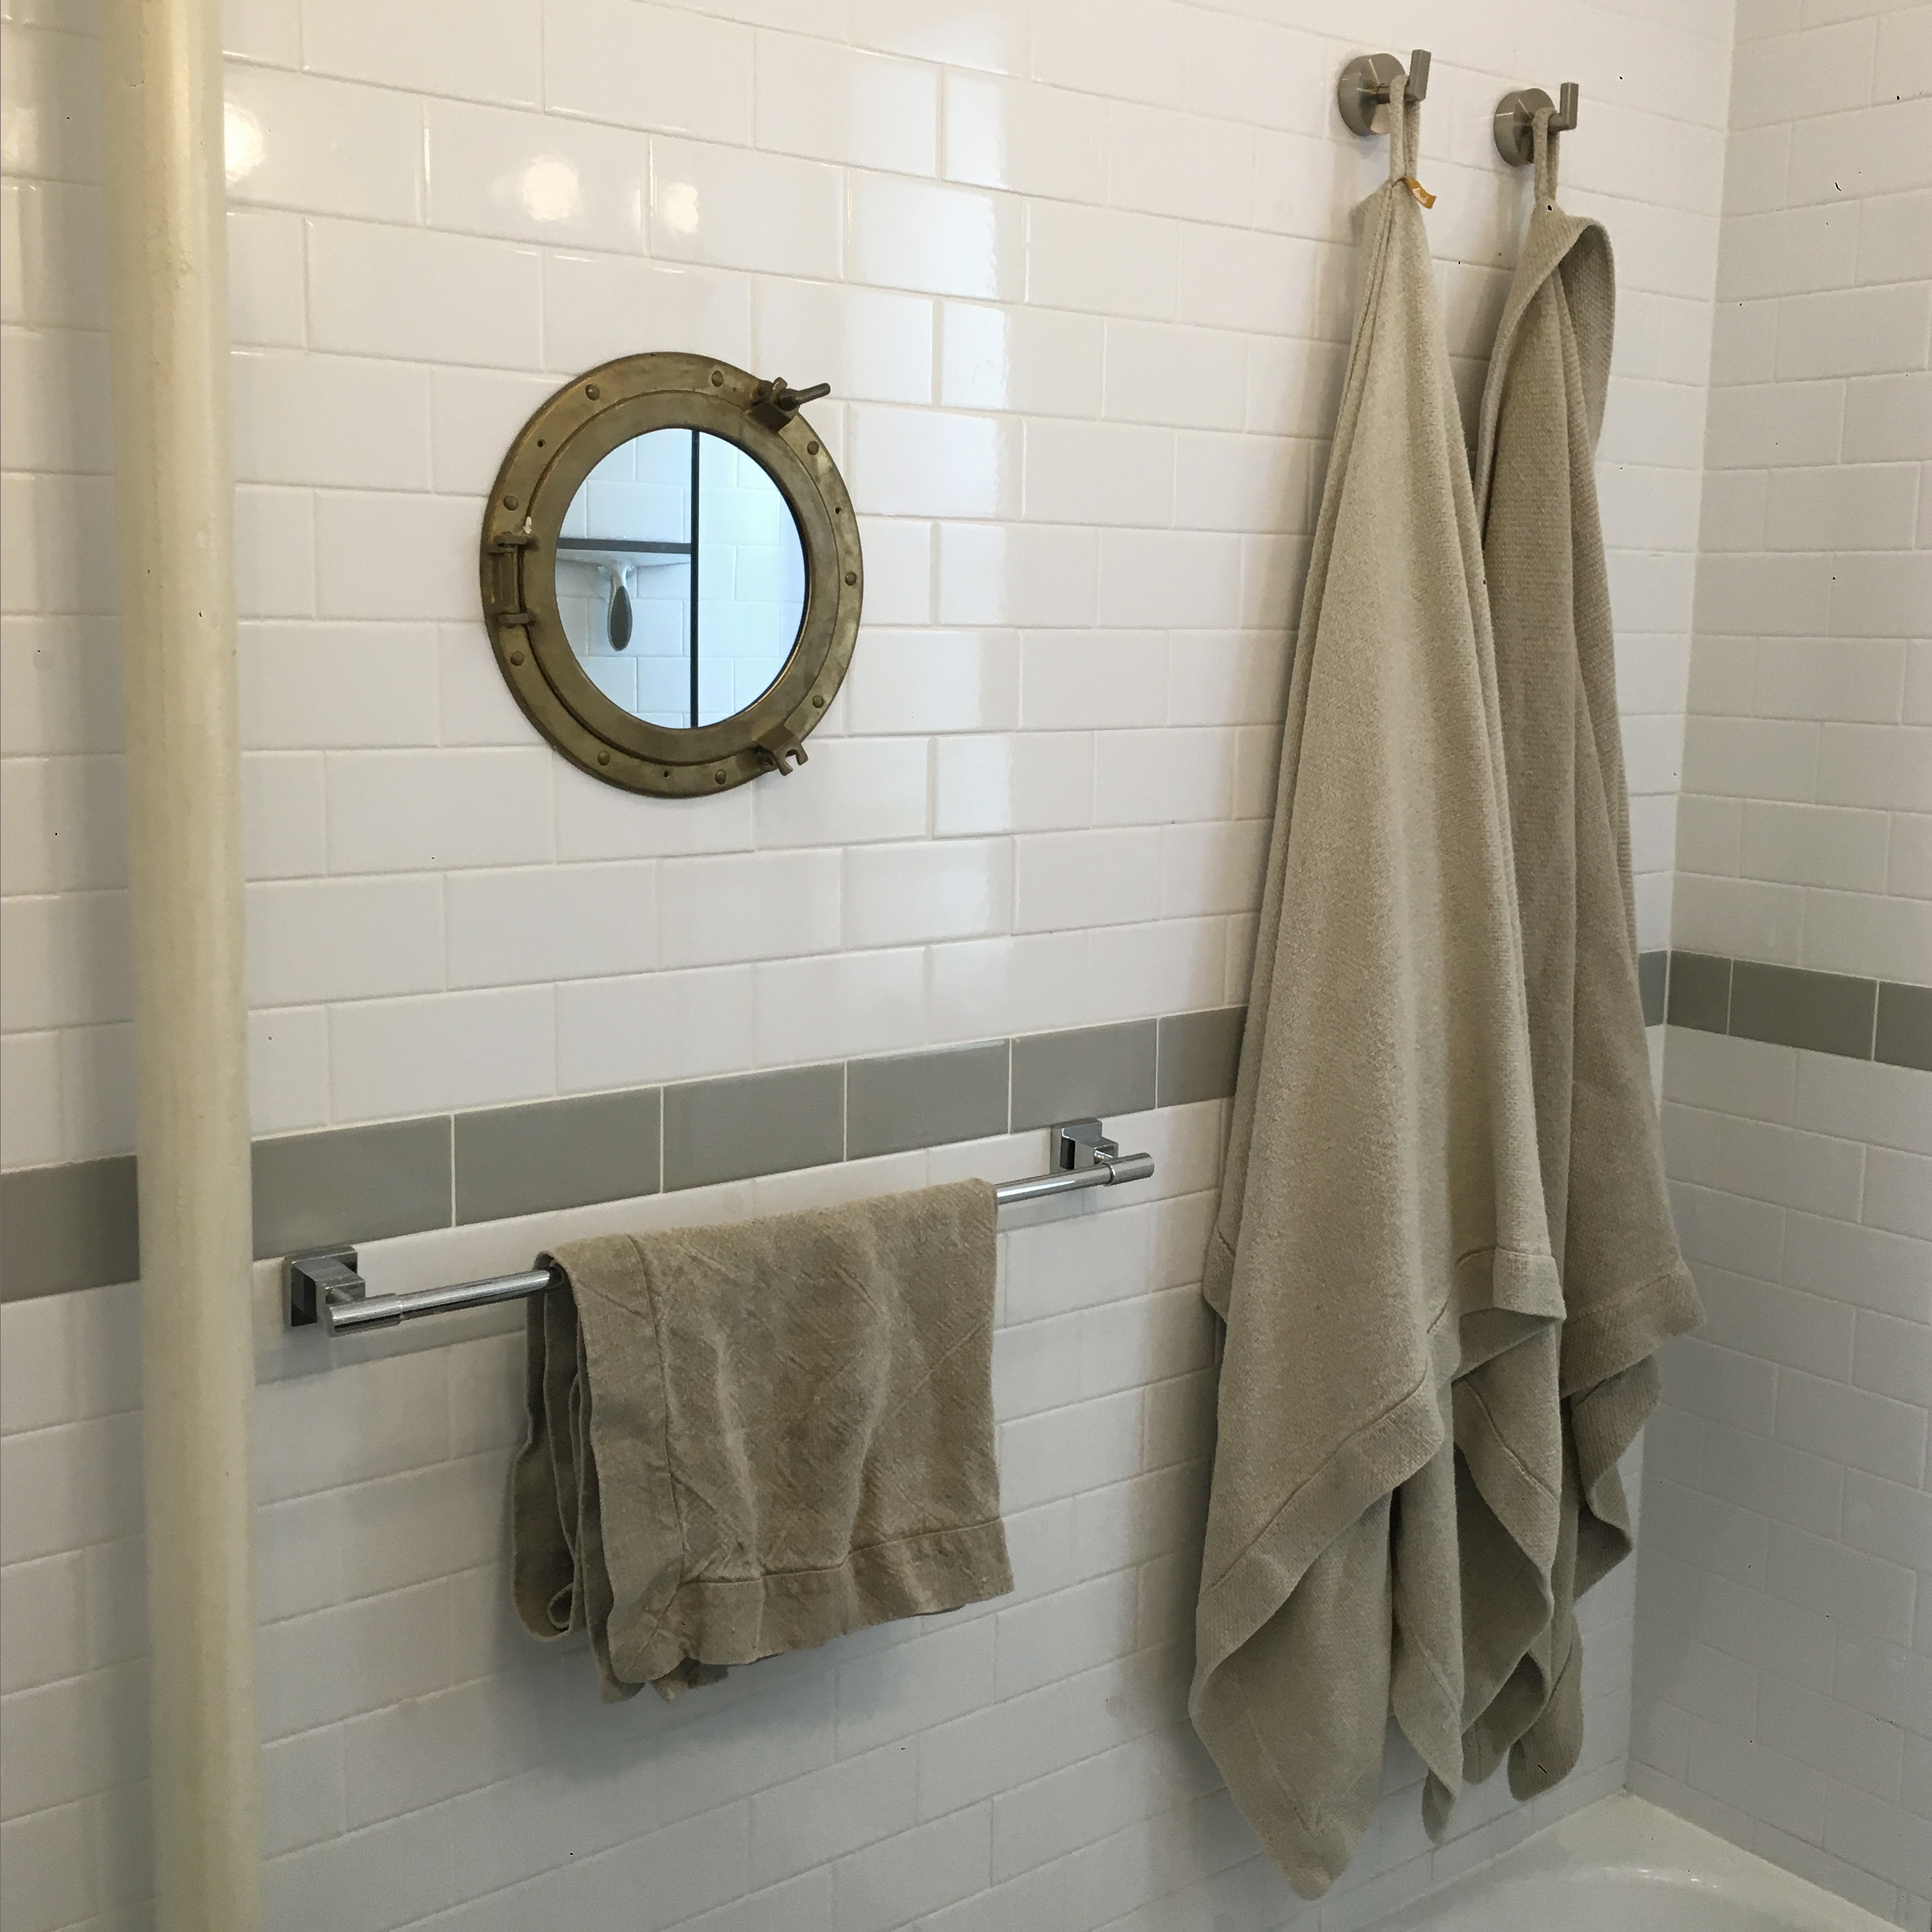 spa-towels-bathroom.jpg